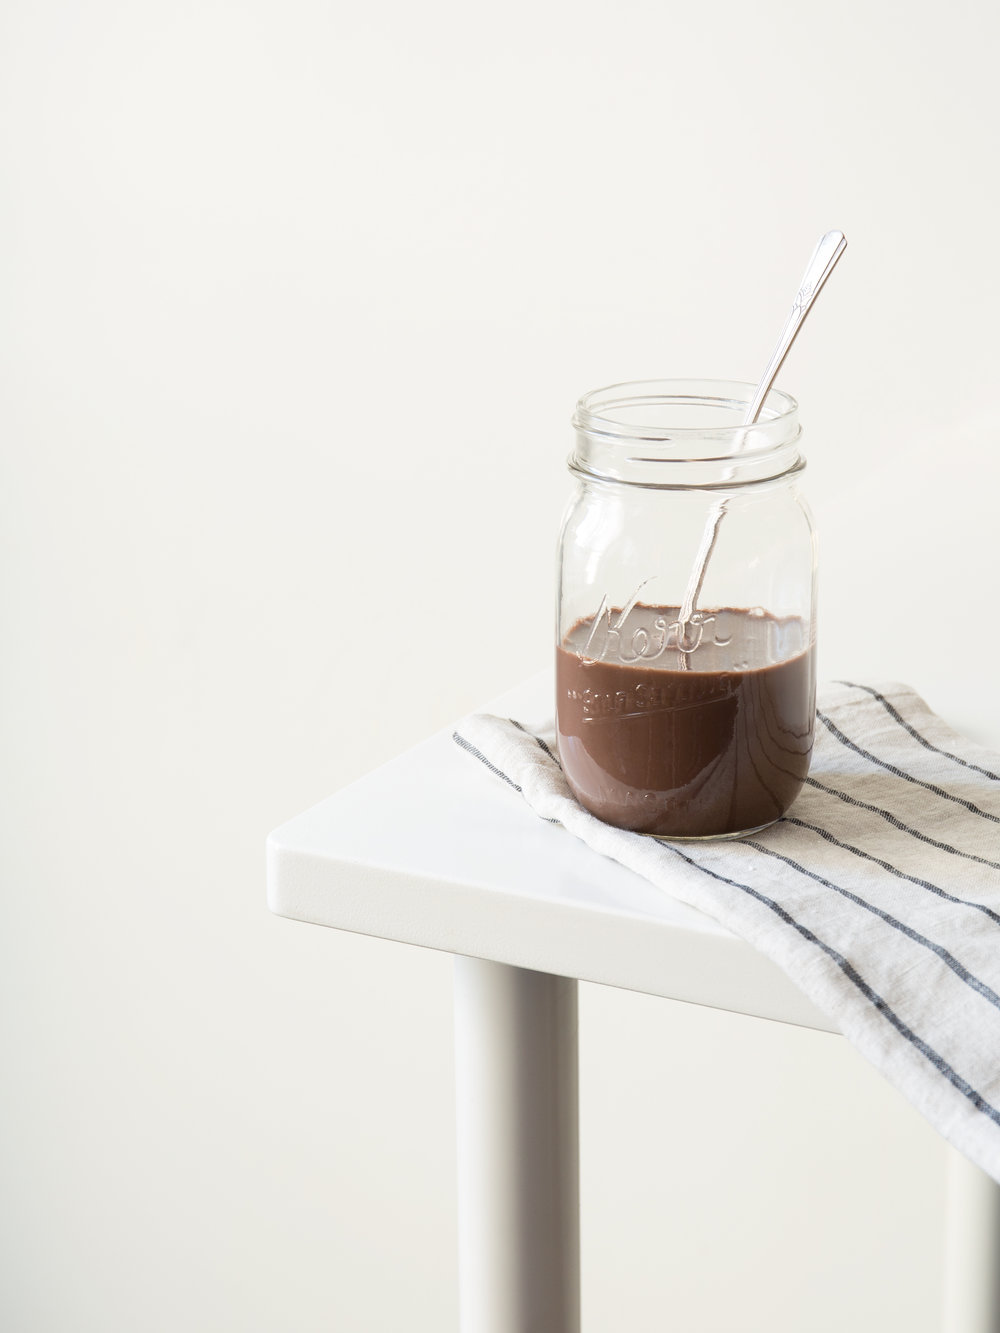 27-PORTABLE-SNACKS_CHOCOLATE-MILK.jpg